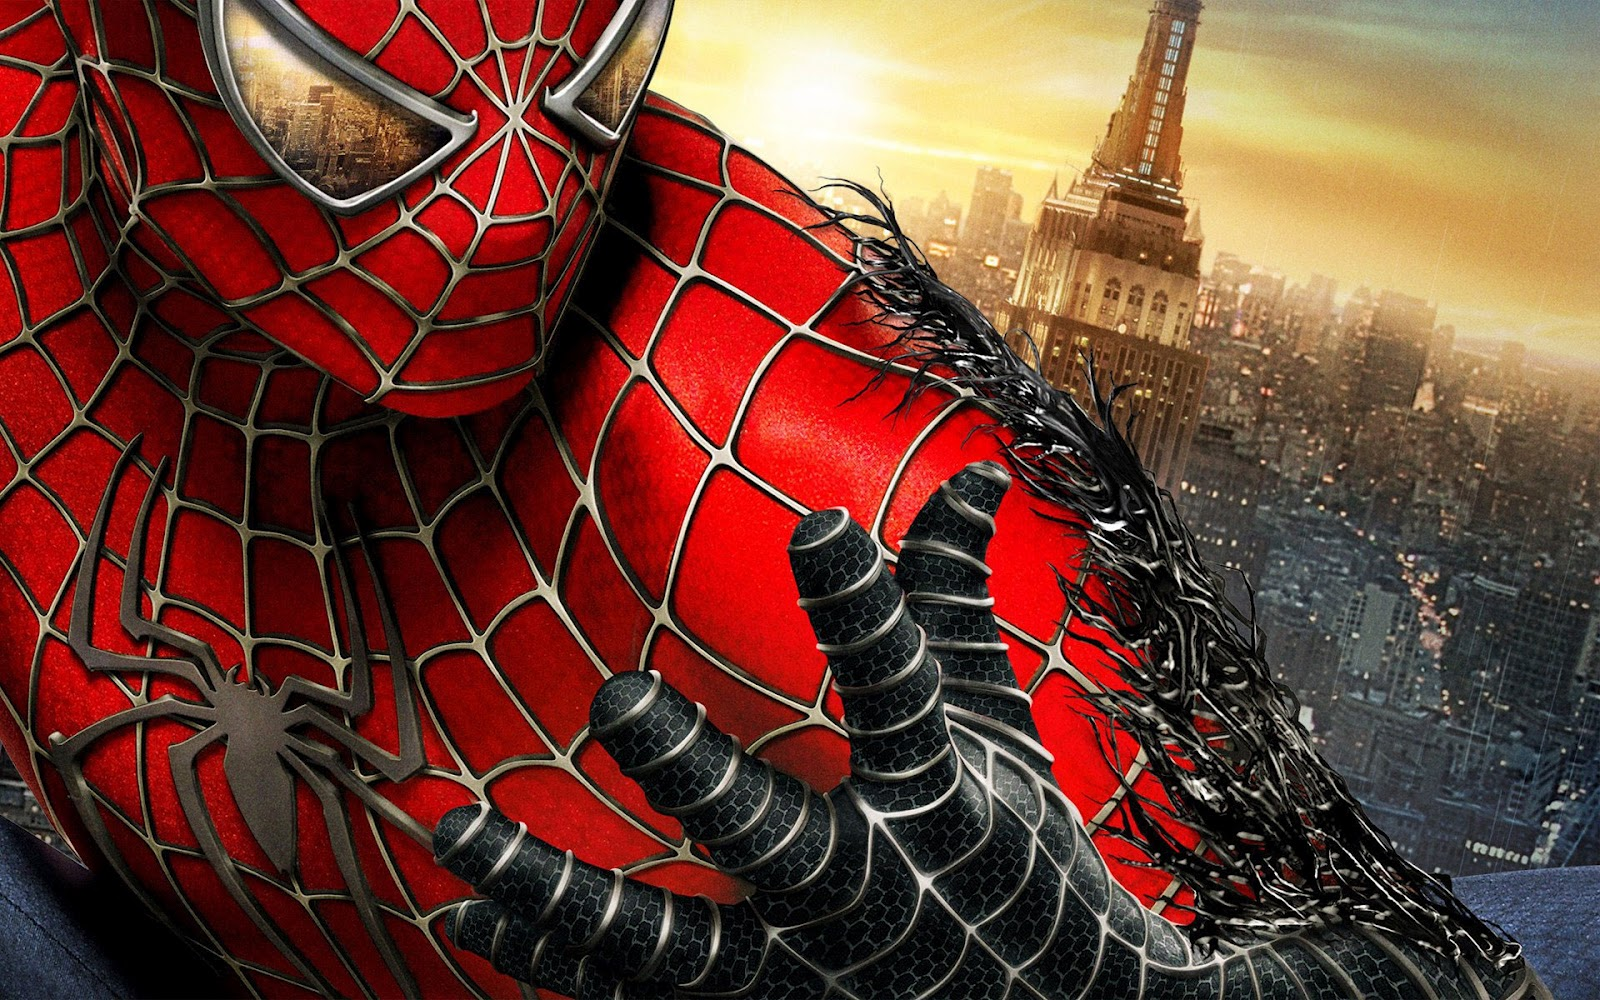 HD WALLPAPER For Pc and Mobile : Spiderman Wallpaper